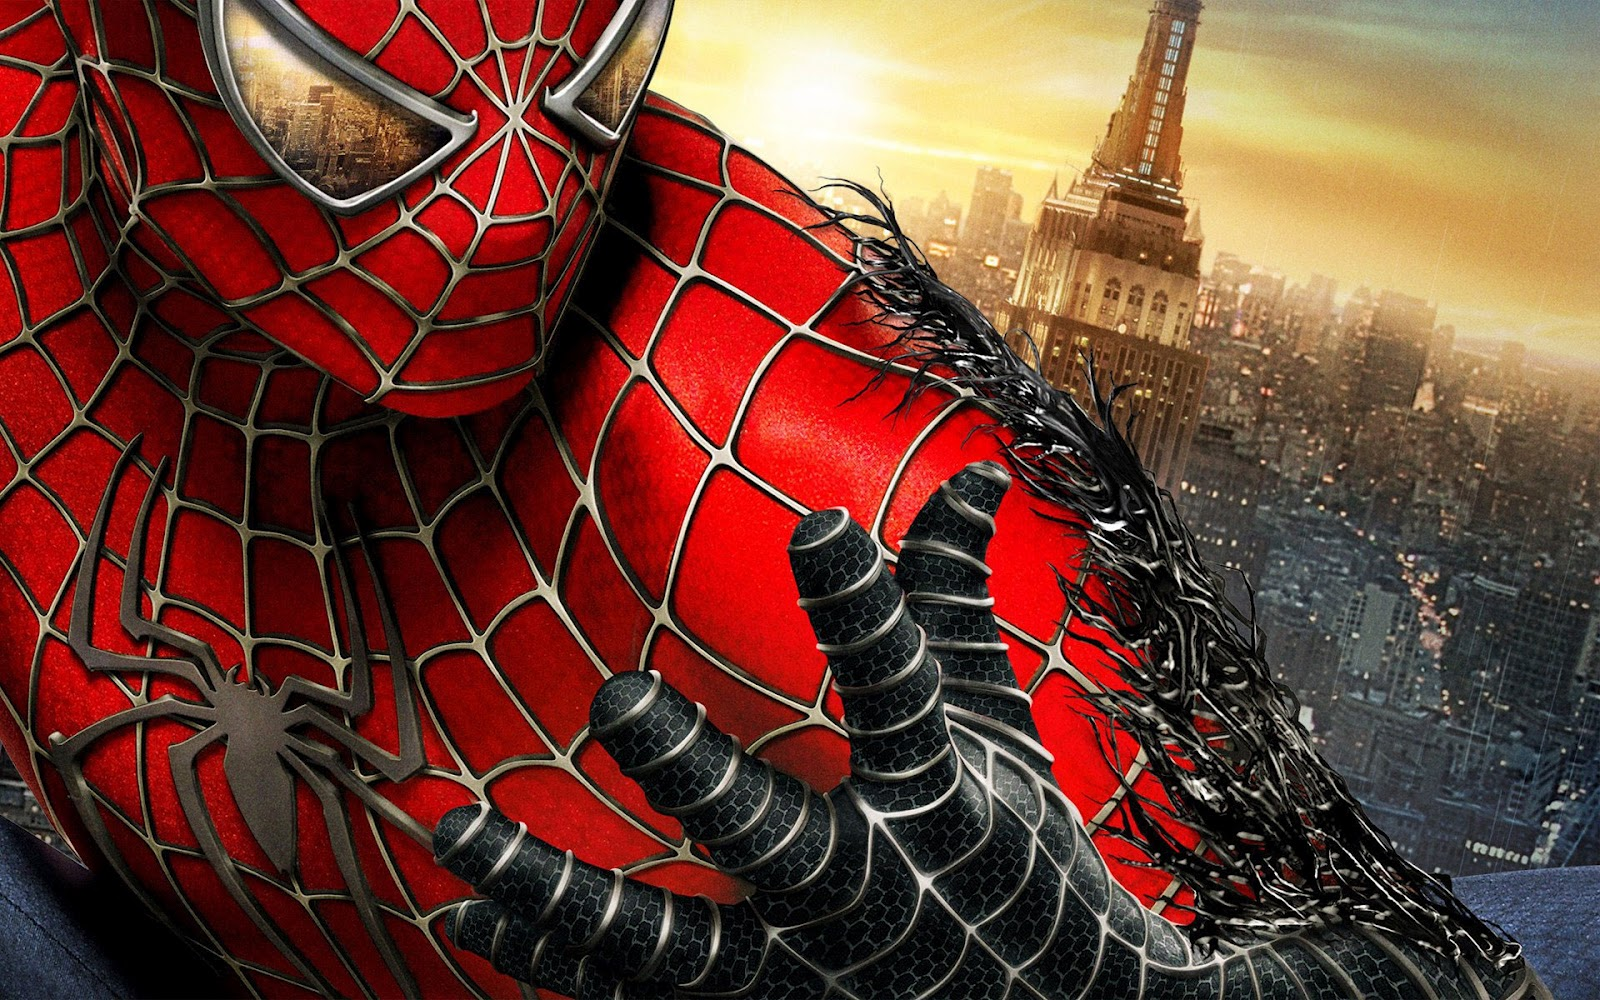 HD WALLPAPER For Pc and Mobile : Spiderman Wallpaper